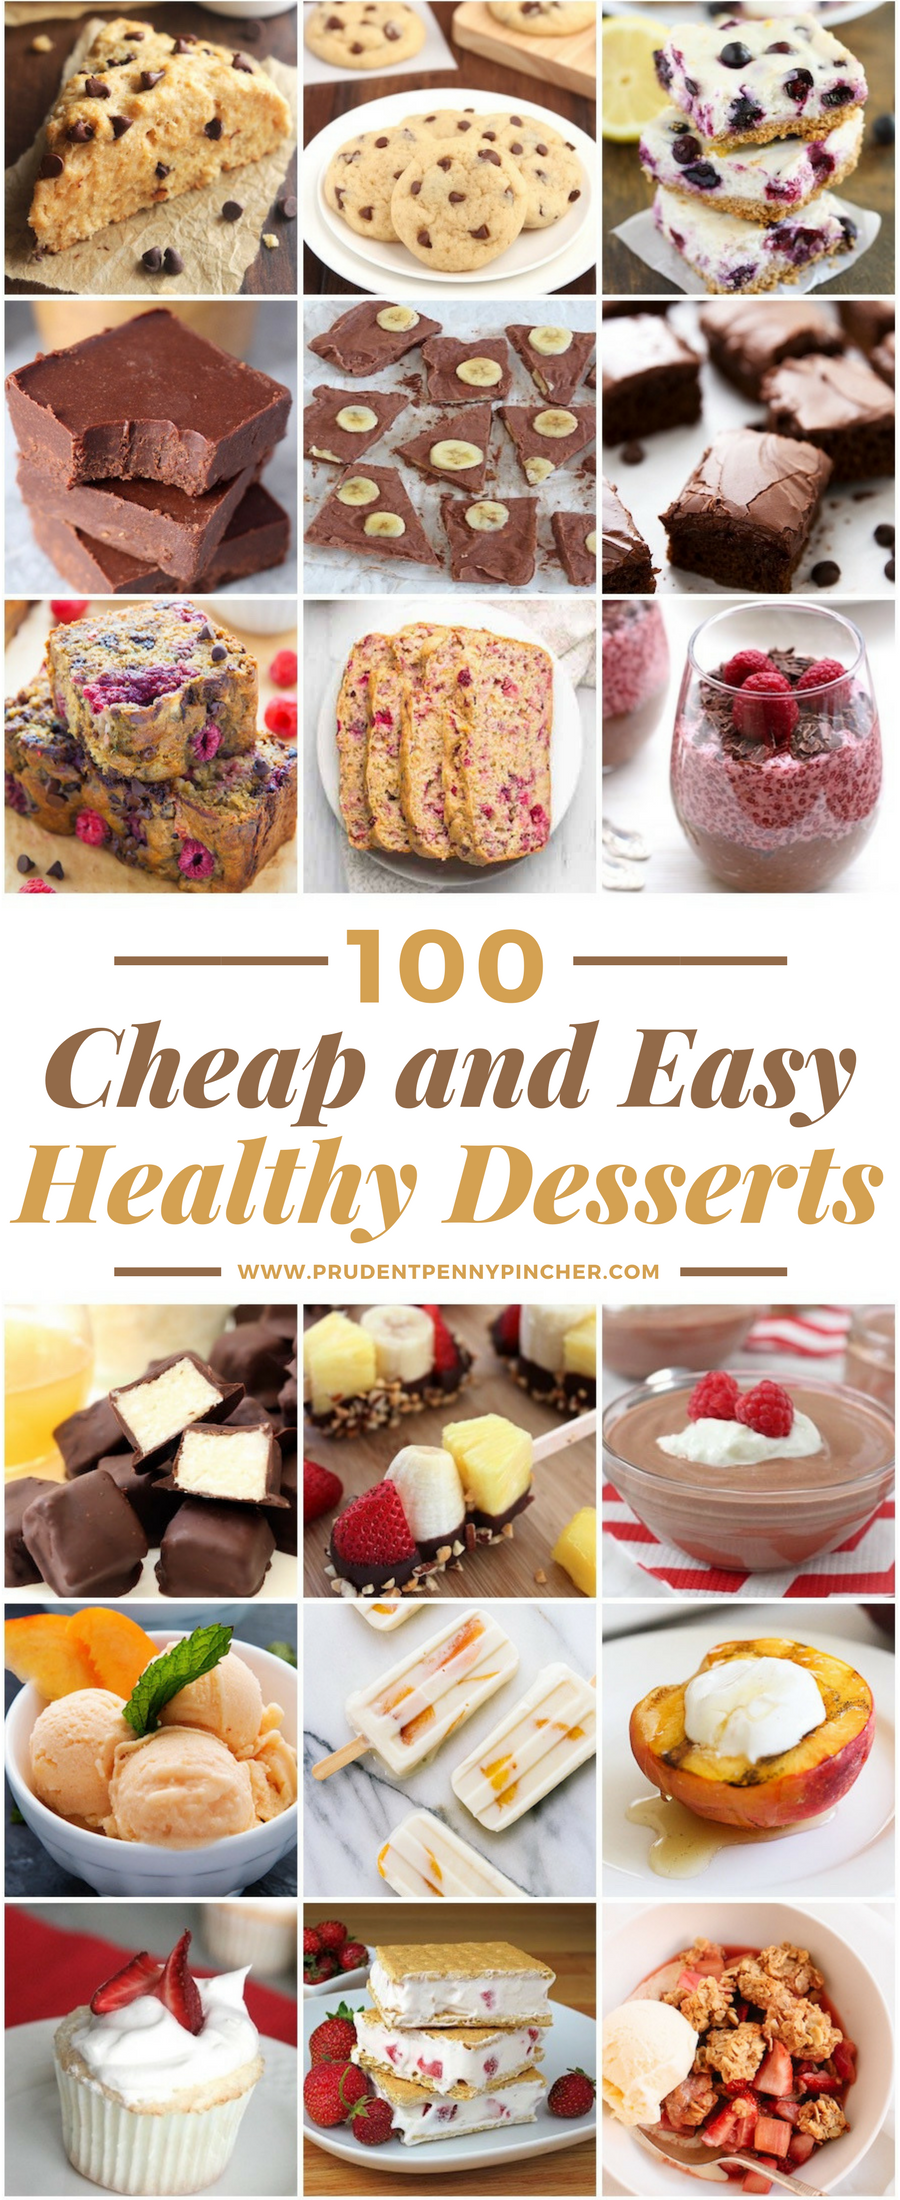 100 Cheap And Easy Healthy Desserts Healthy Desserts Easy Dessert Recipes Cheap Desserts